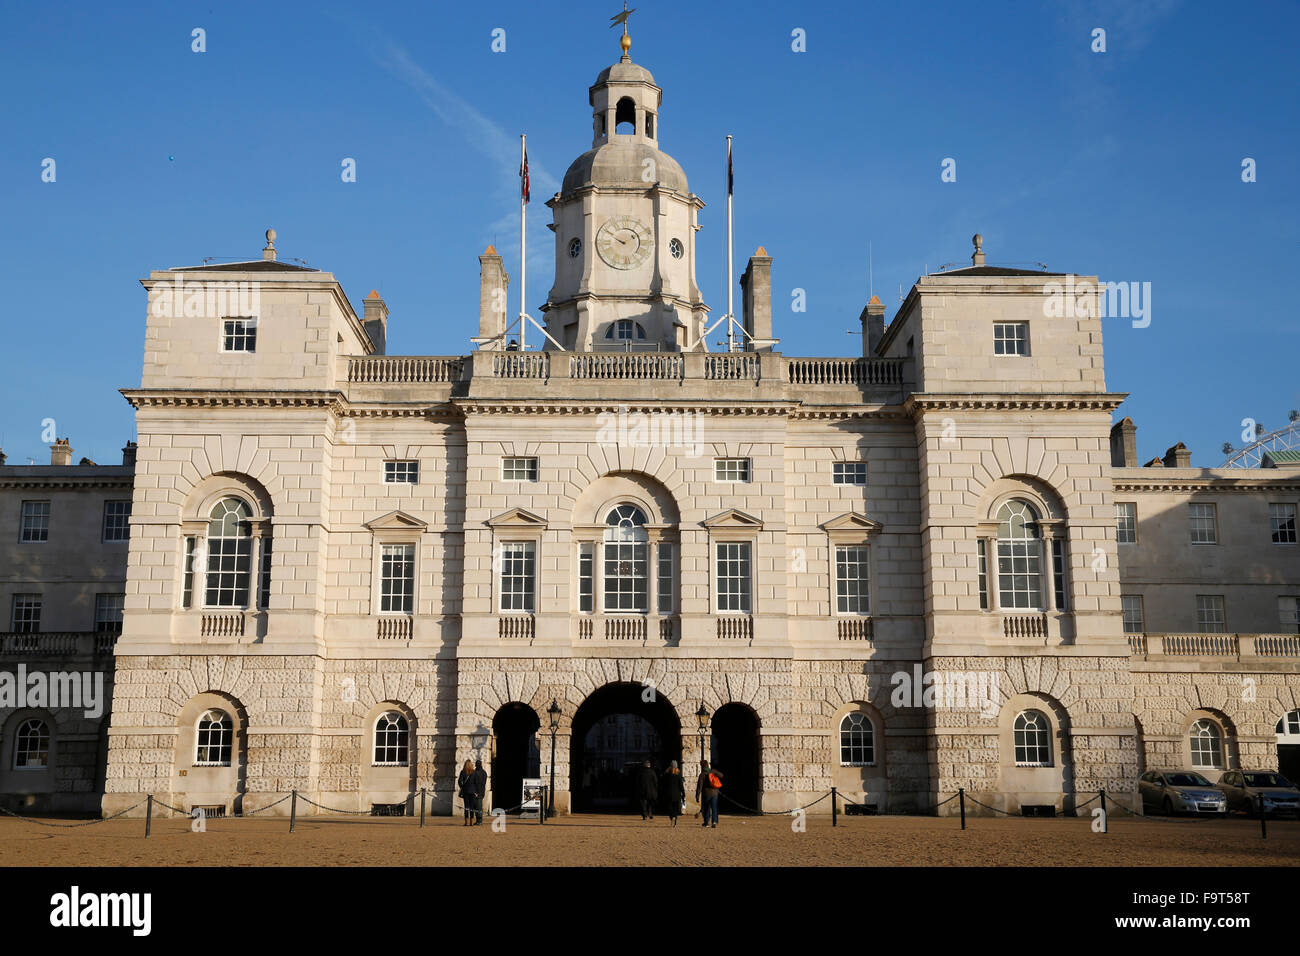 Headquarters of the Horse Guard Household Division in Whitehall - Stock Image